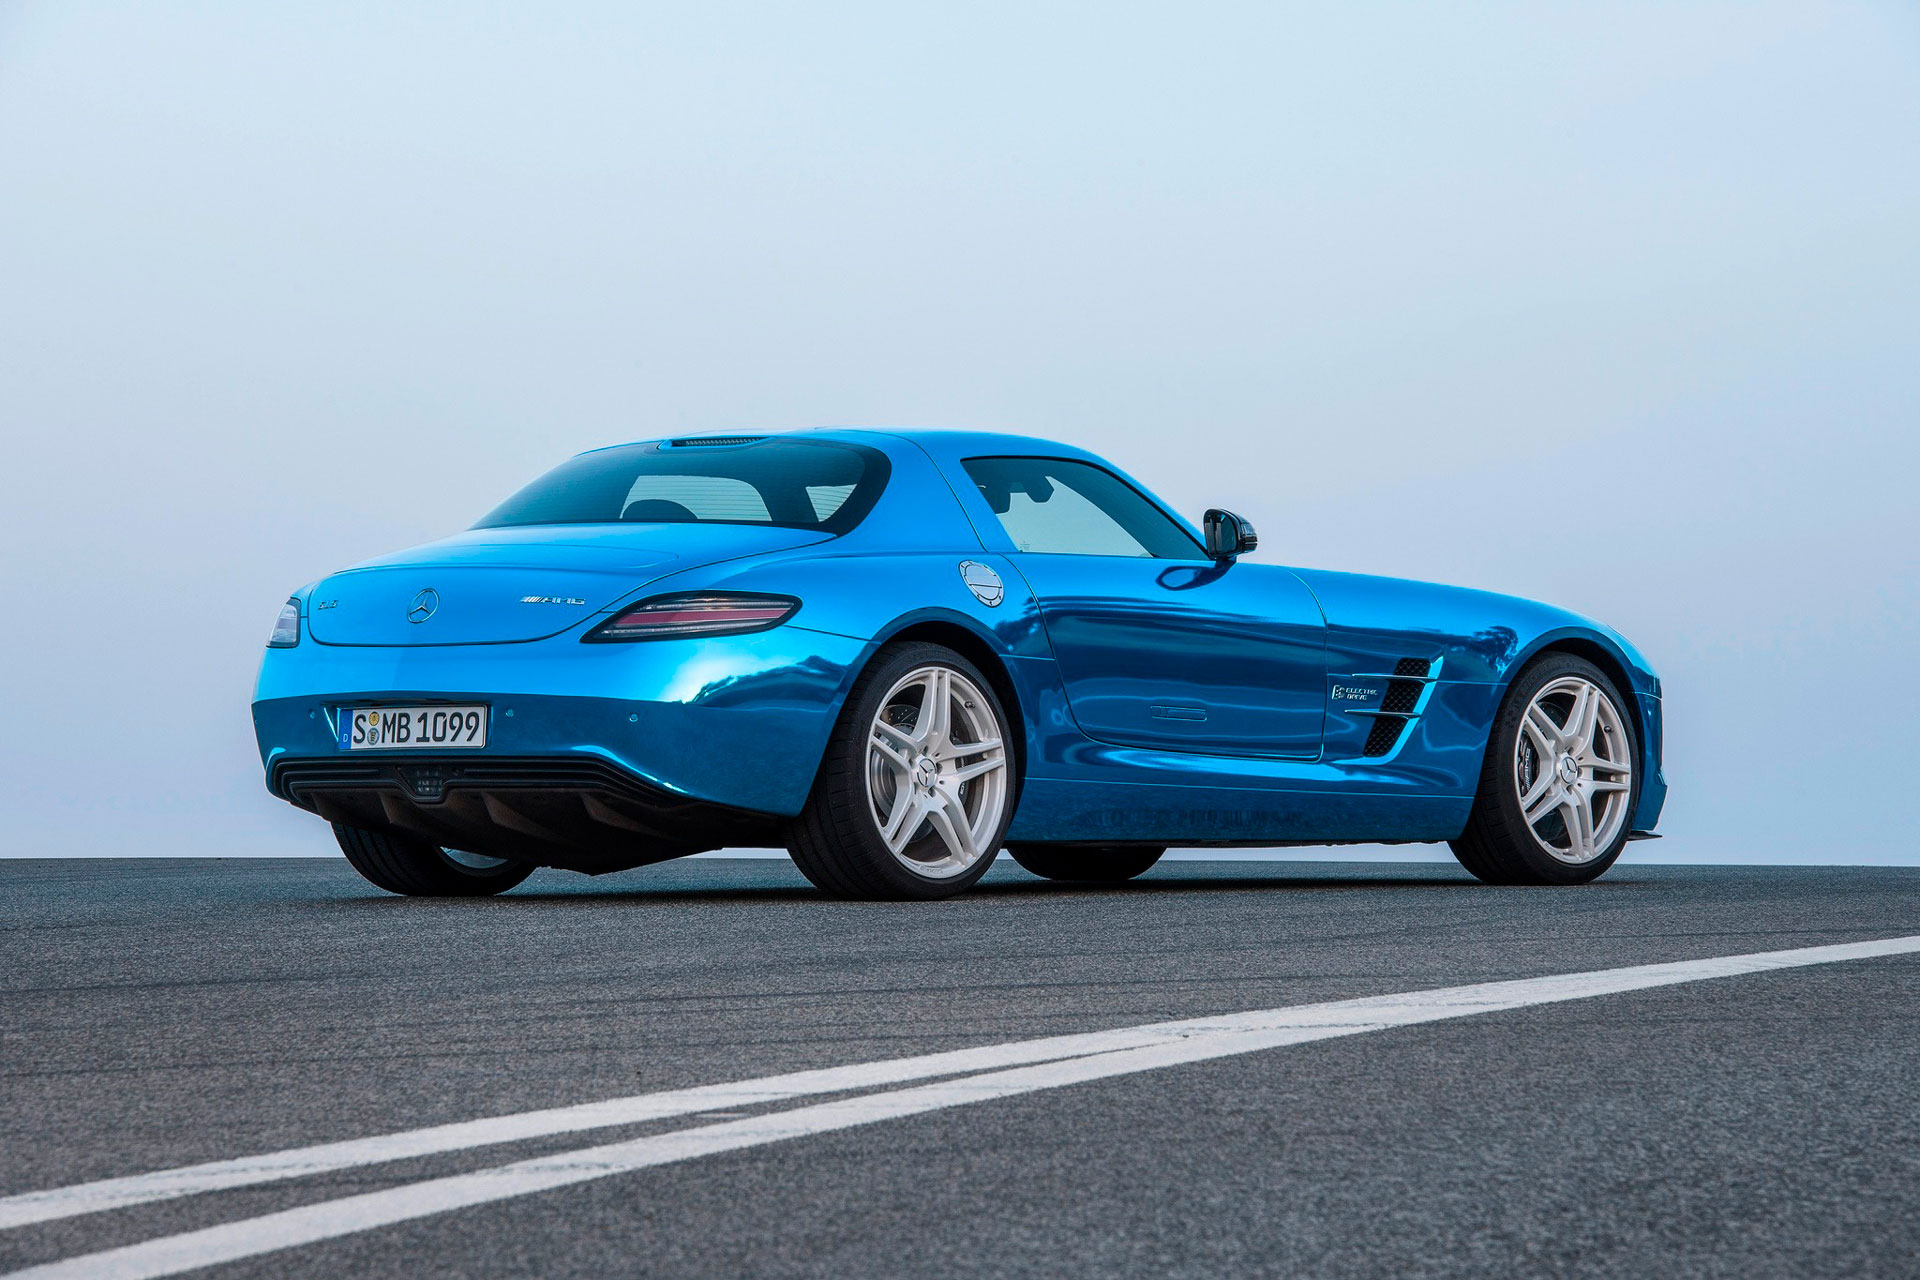 Культовый автомобиль Mercedes-Benz SLS AMG Coupe вид сзади